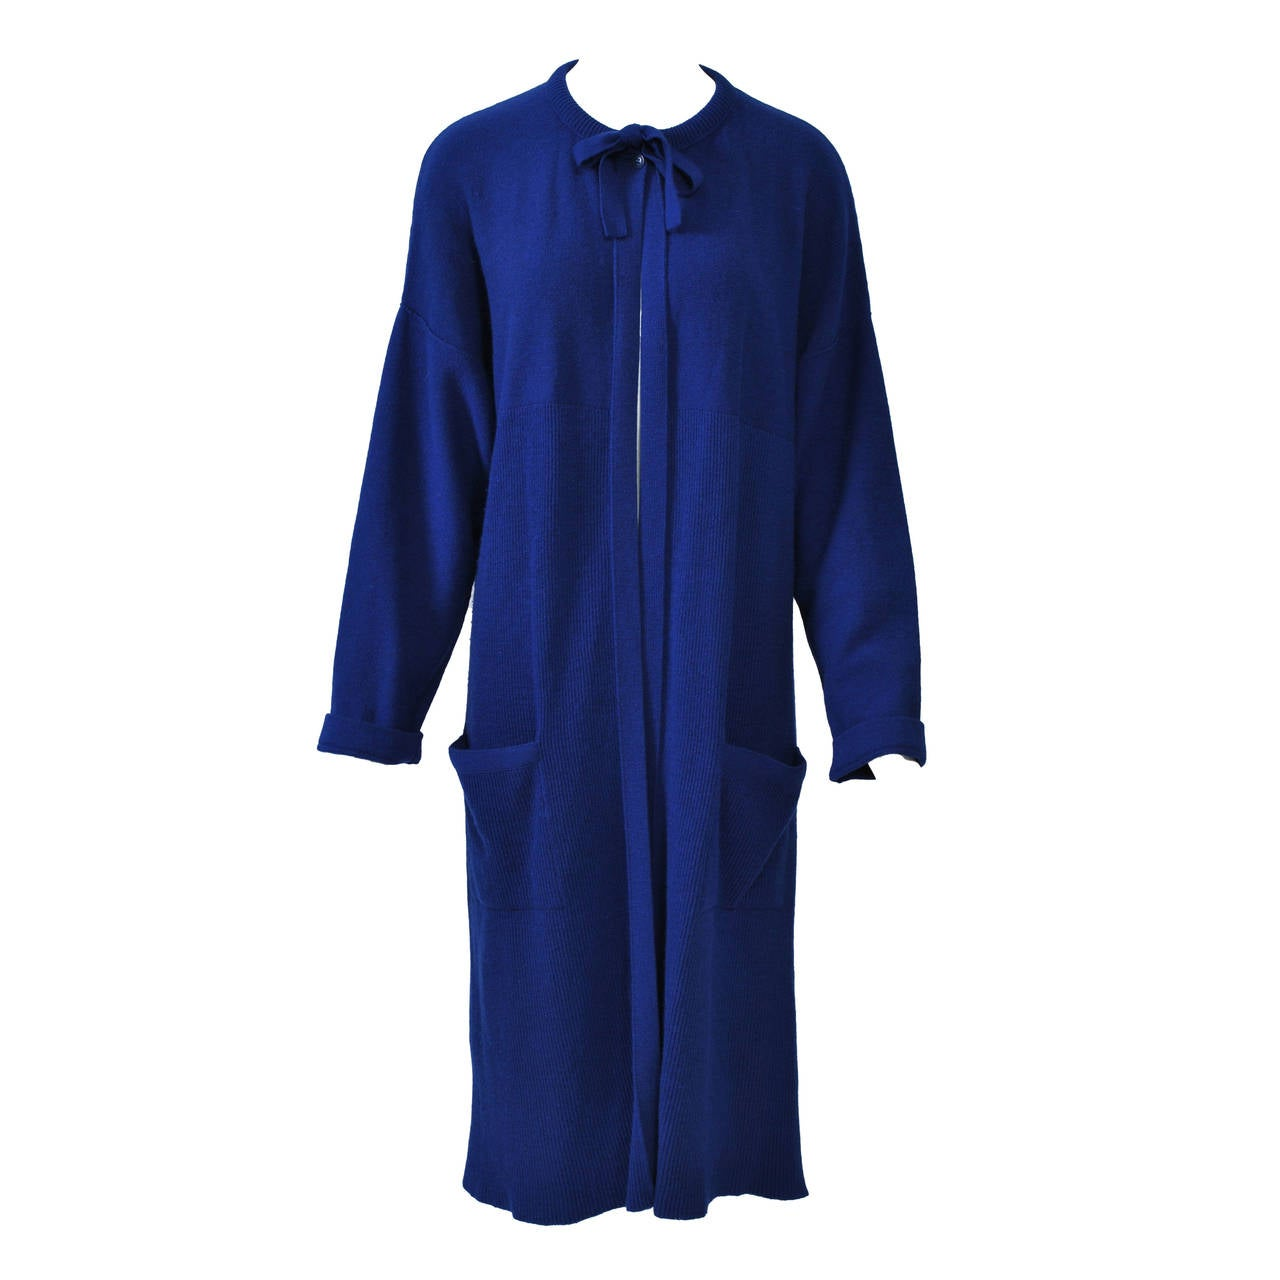 Sonia Rykiel Blue Sweater Coat For Sale at 1stdibs